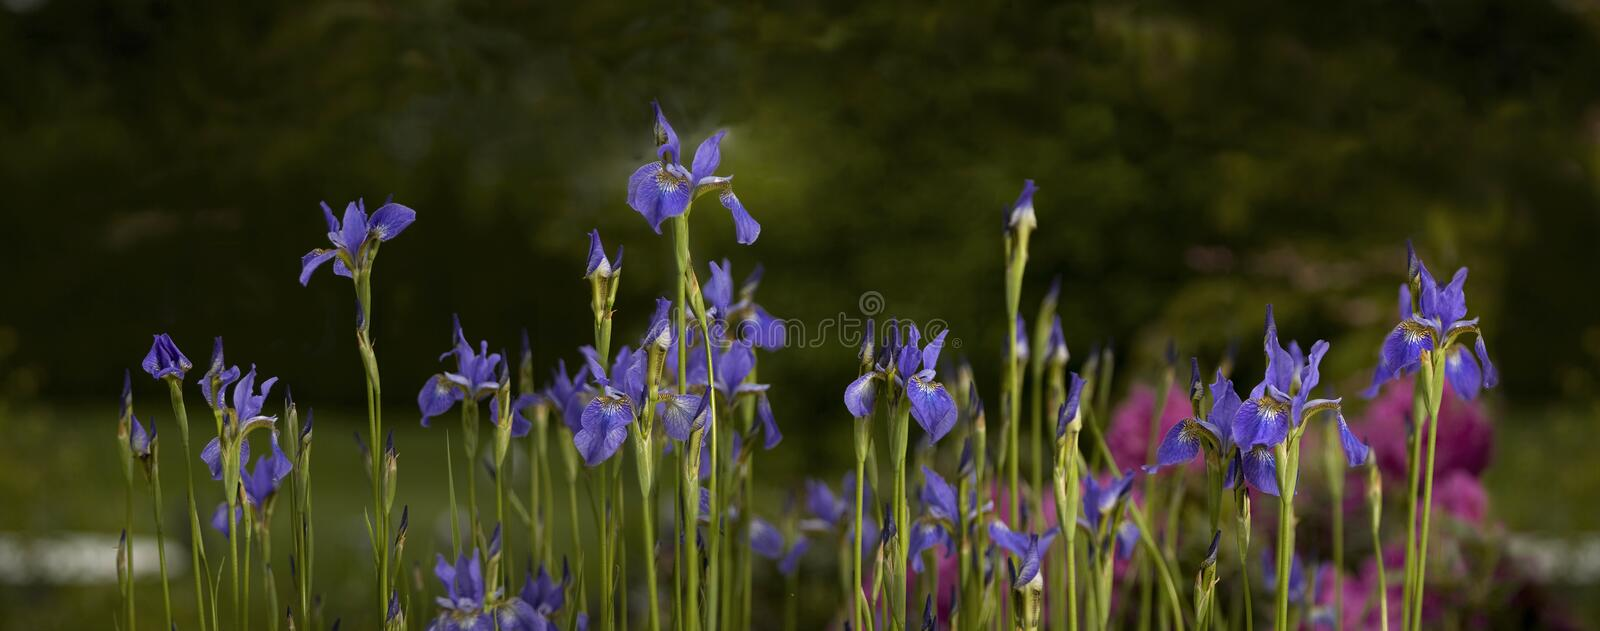 Iris pourpre pendant l'été photos stock